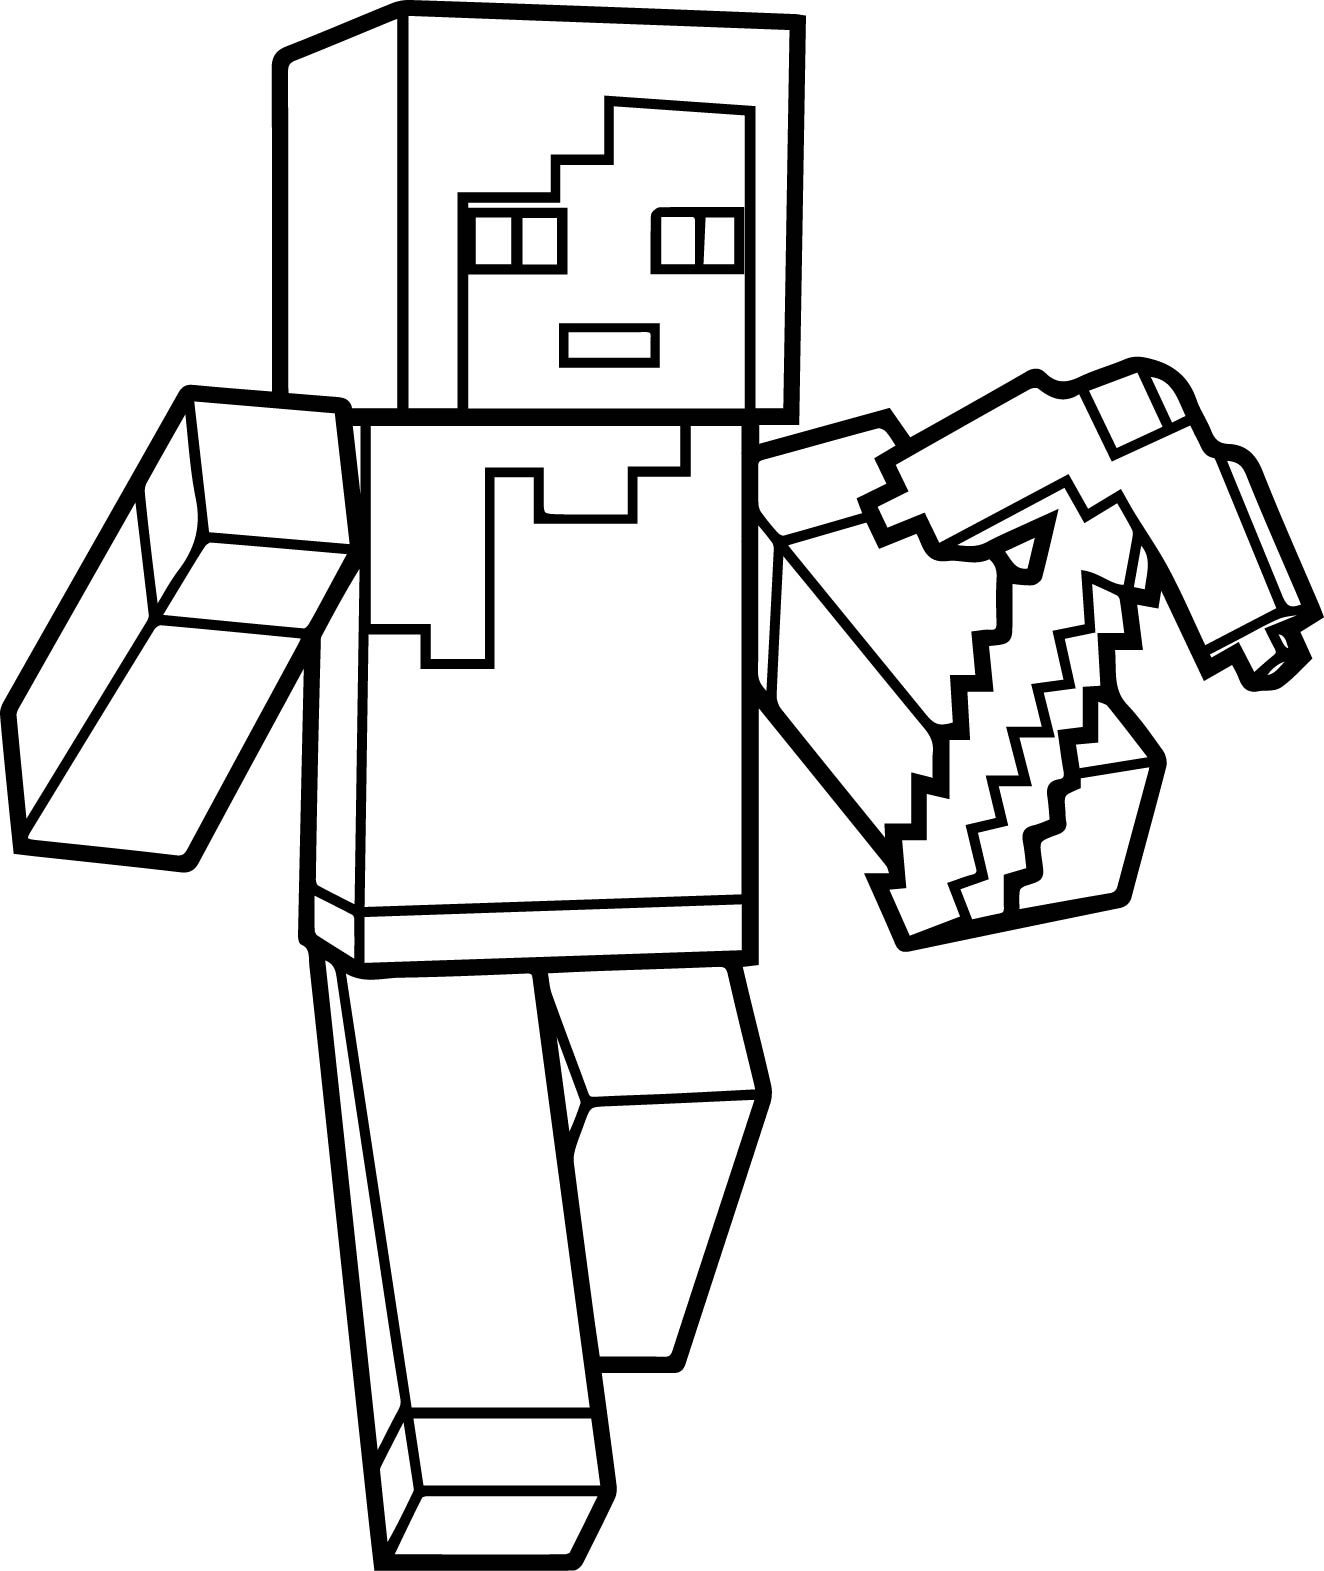 1324x1571 Minecraft World Free Coloring Page Kids Pages Of Ender